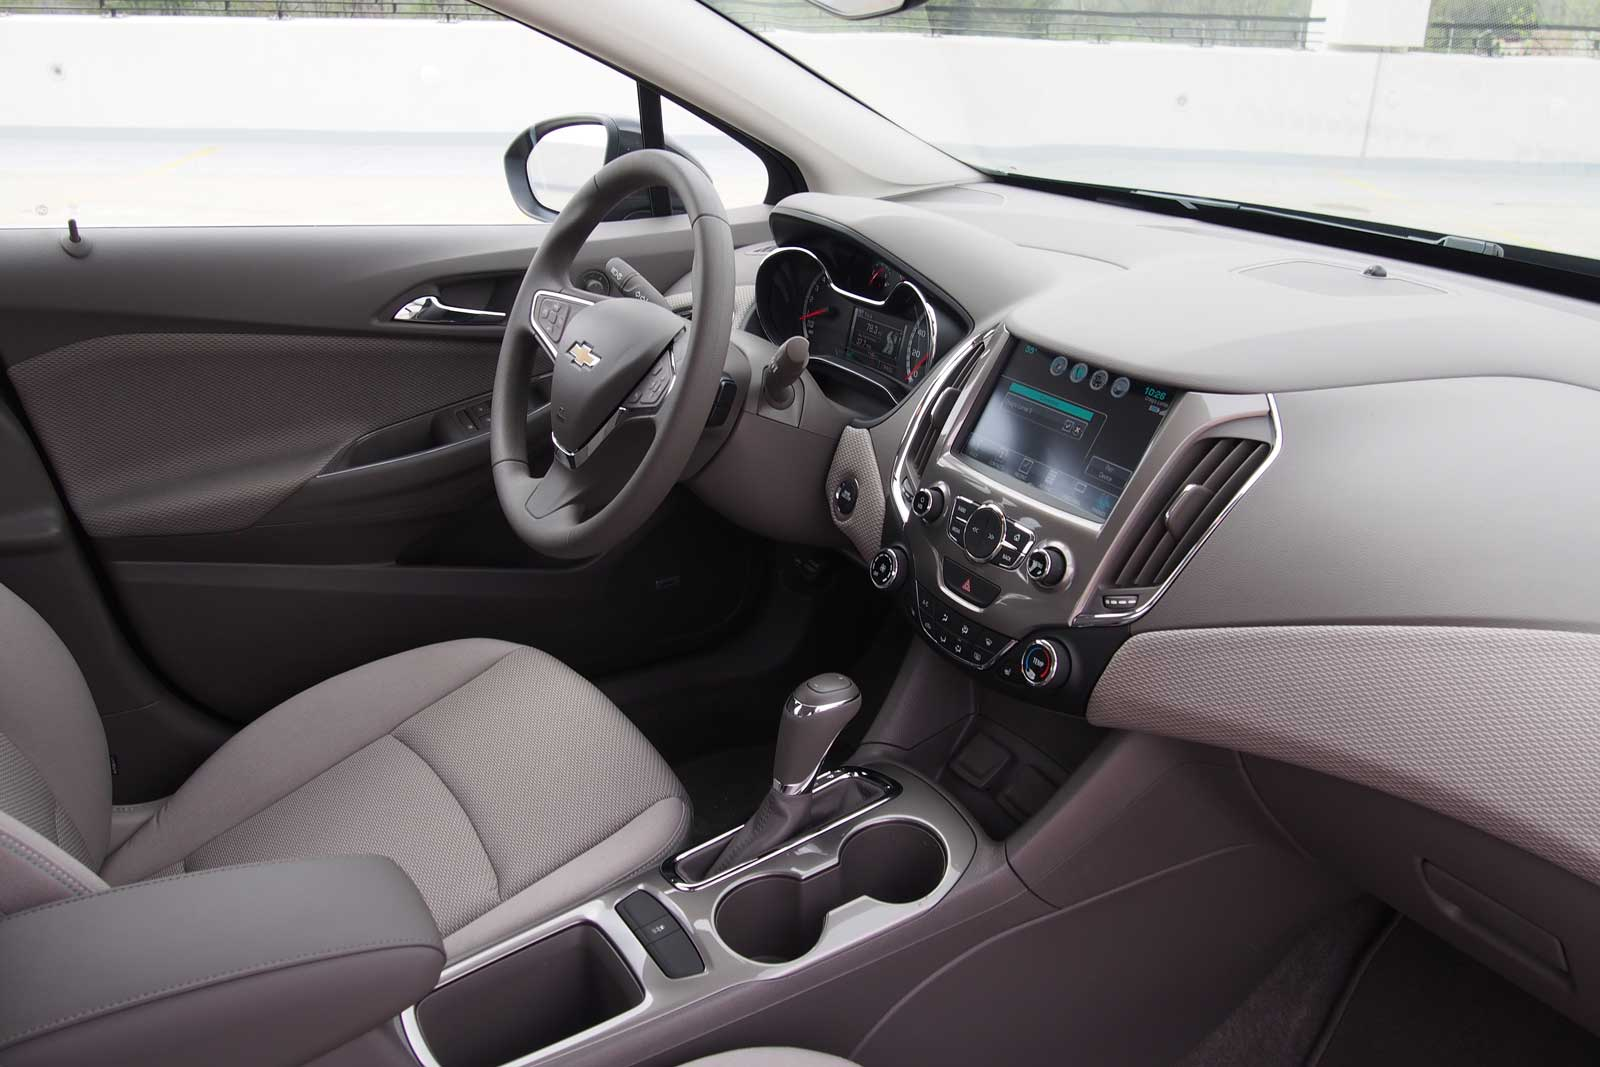 chevy cruze interior stunning interior images of the chevy cruze compact car with chevy cruze. Black Bedroom Furniture Sets. Home Design Ideas